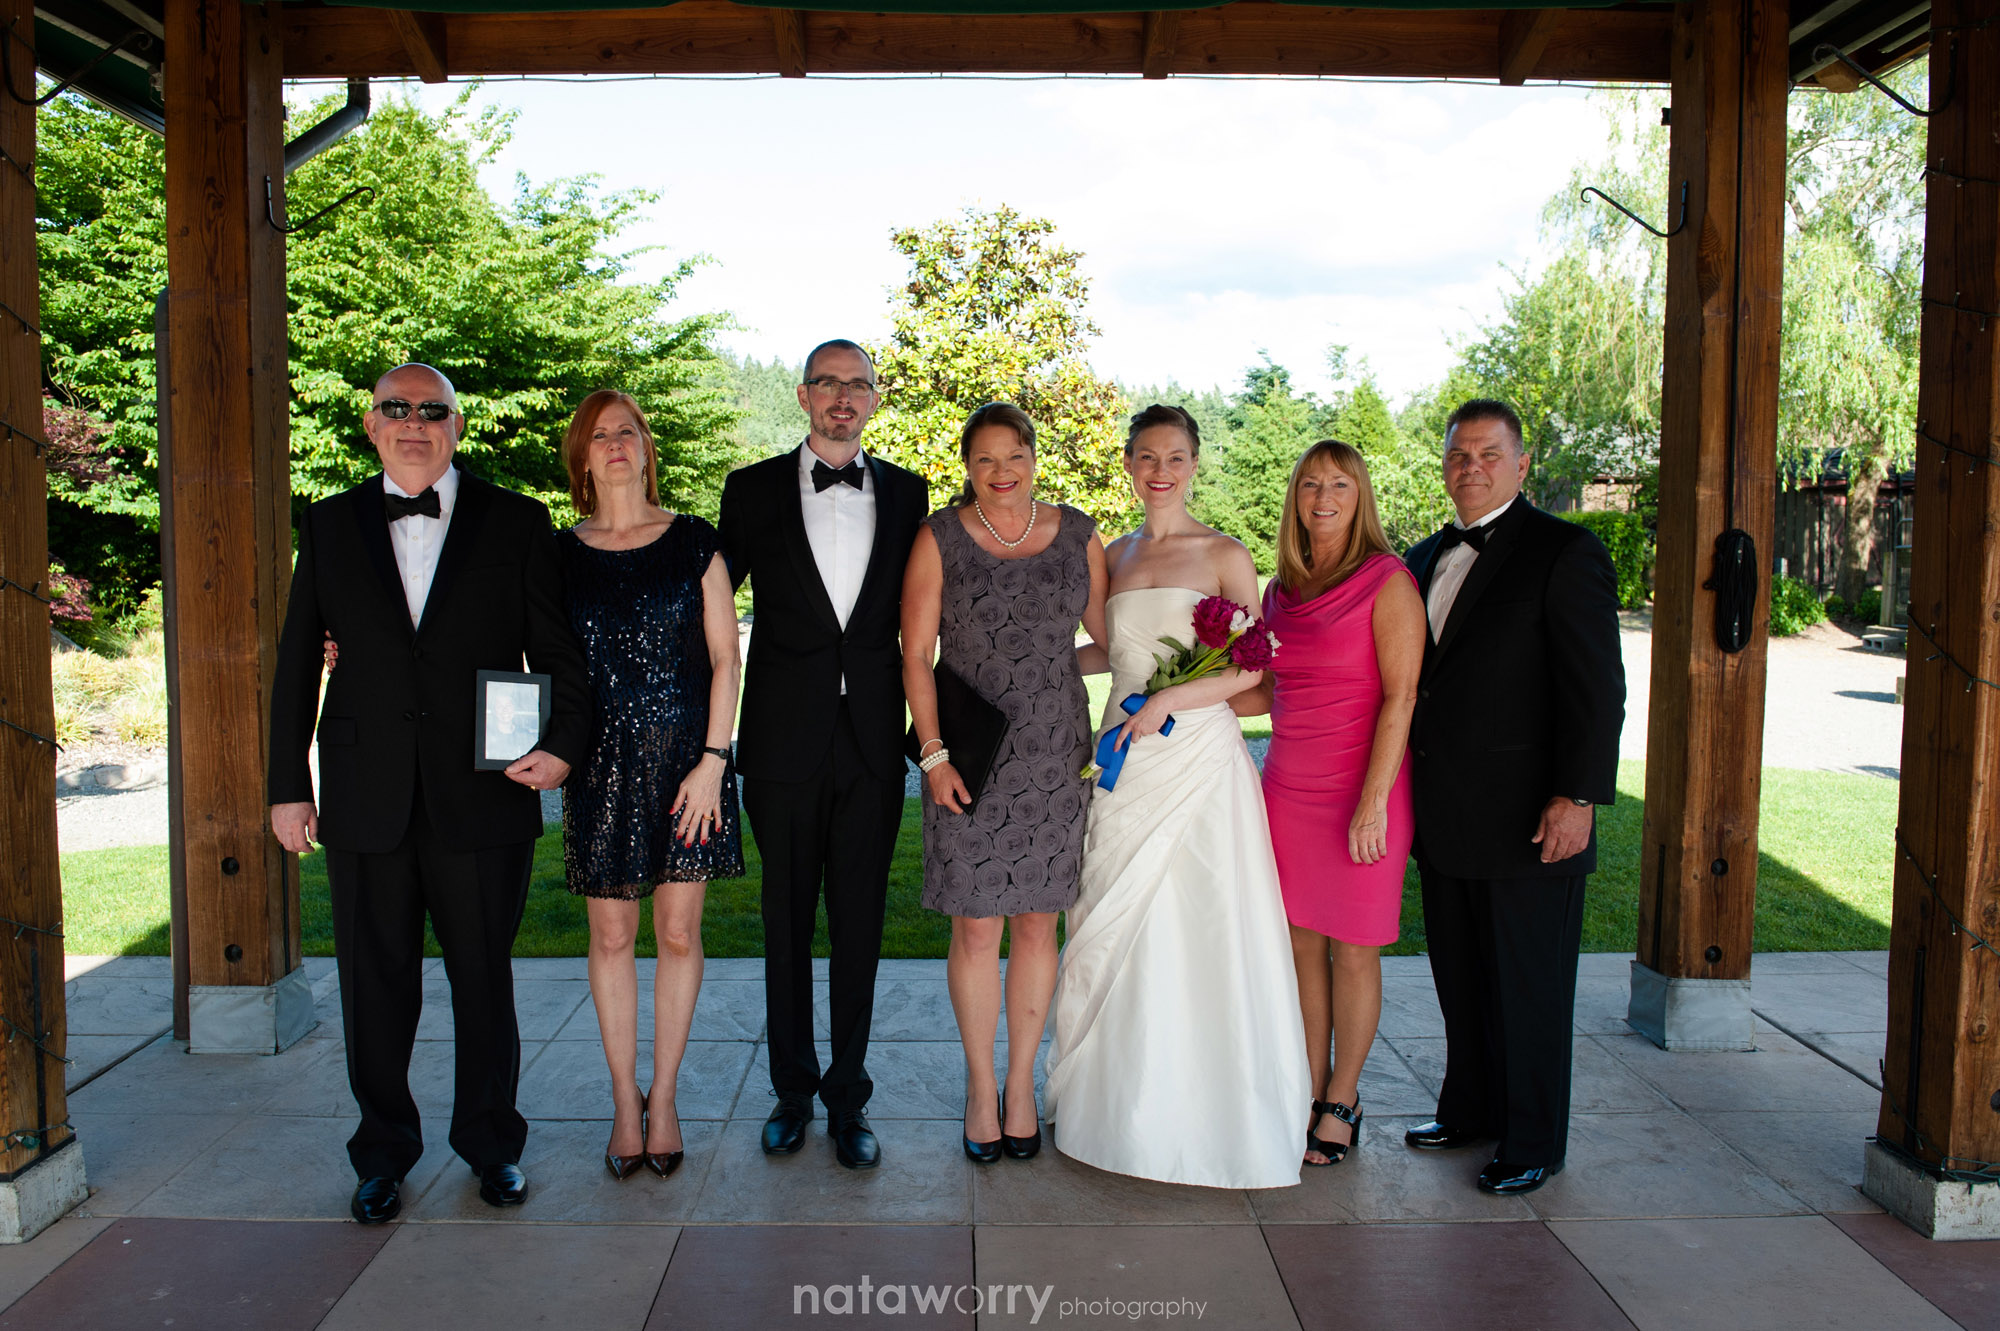 sara shane 6012013 284 of 411 On wedding officiant seattle